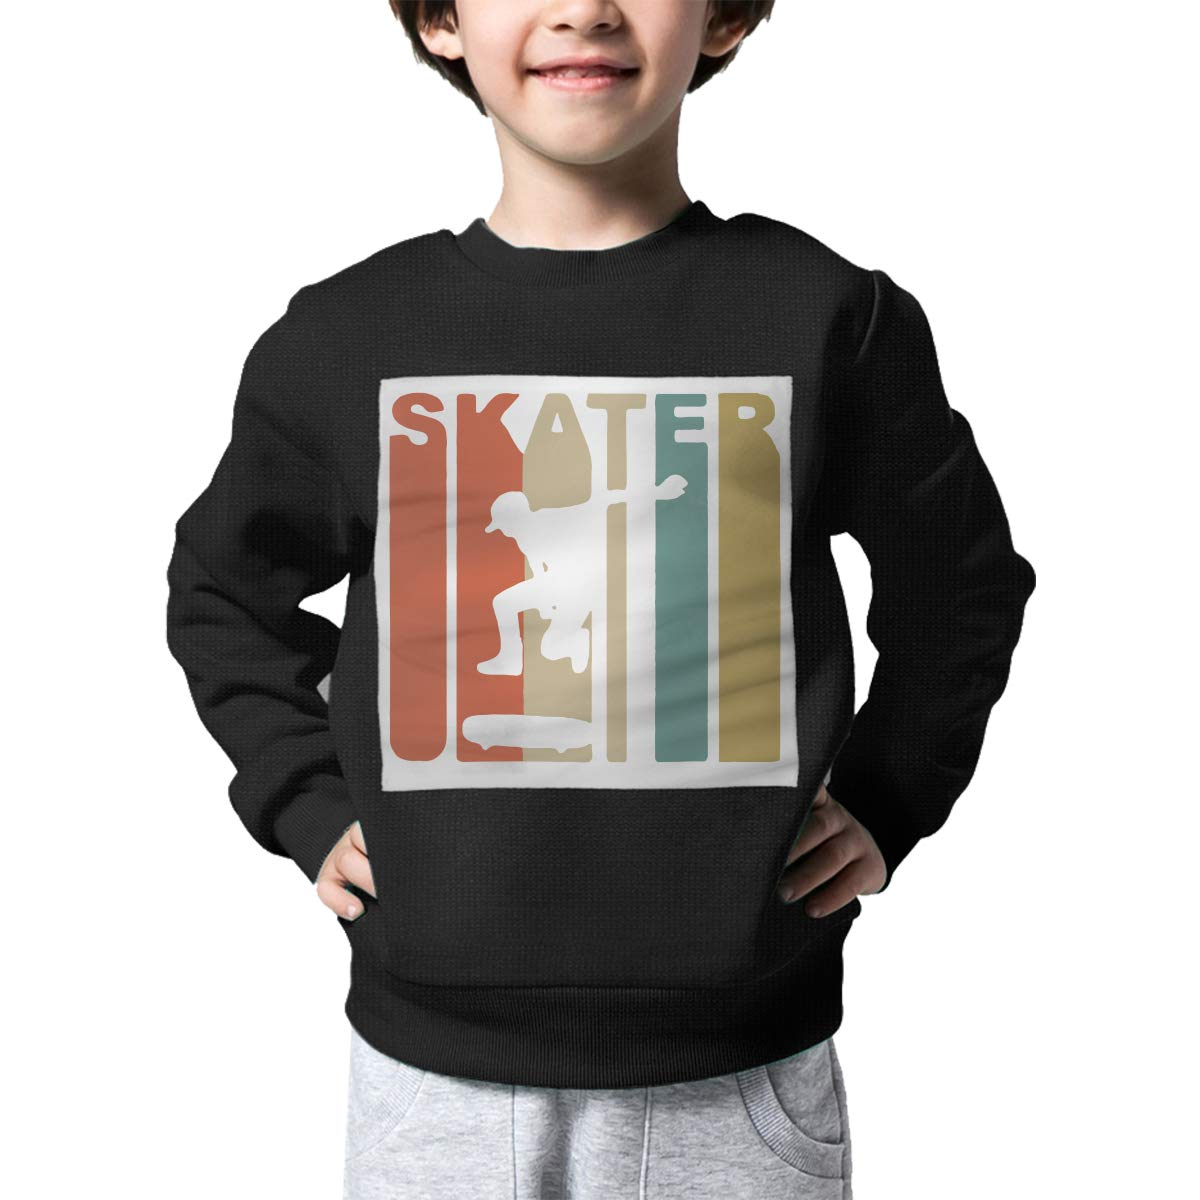 Childrens Retro Skater Skateboarding Sweater Boys Girls Sweatshirt